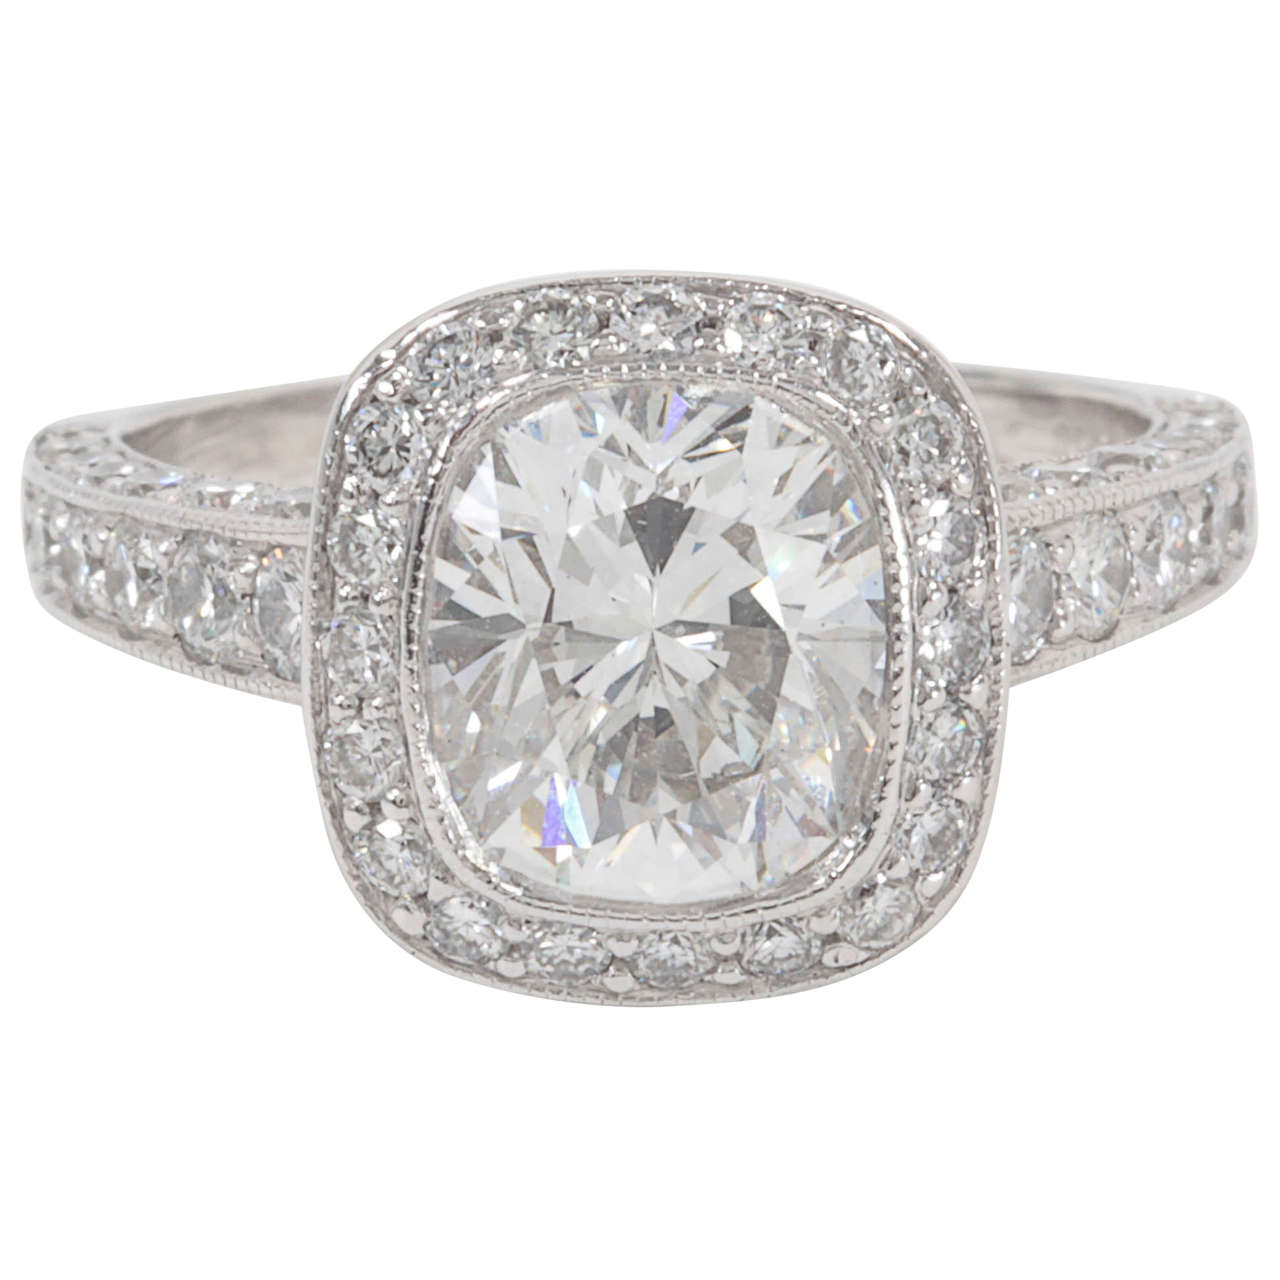 GIA Certified Cushion Cut Engagement Ring